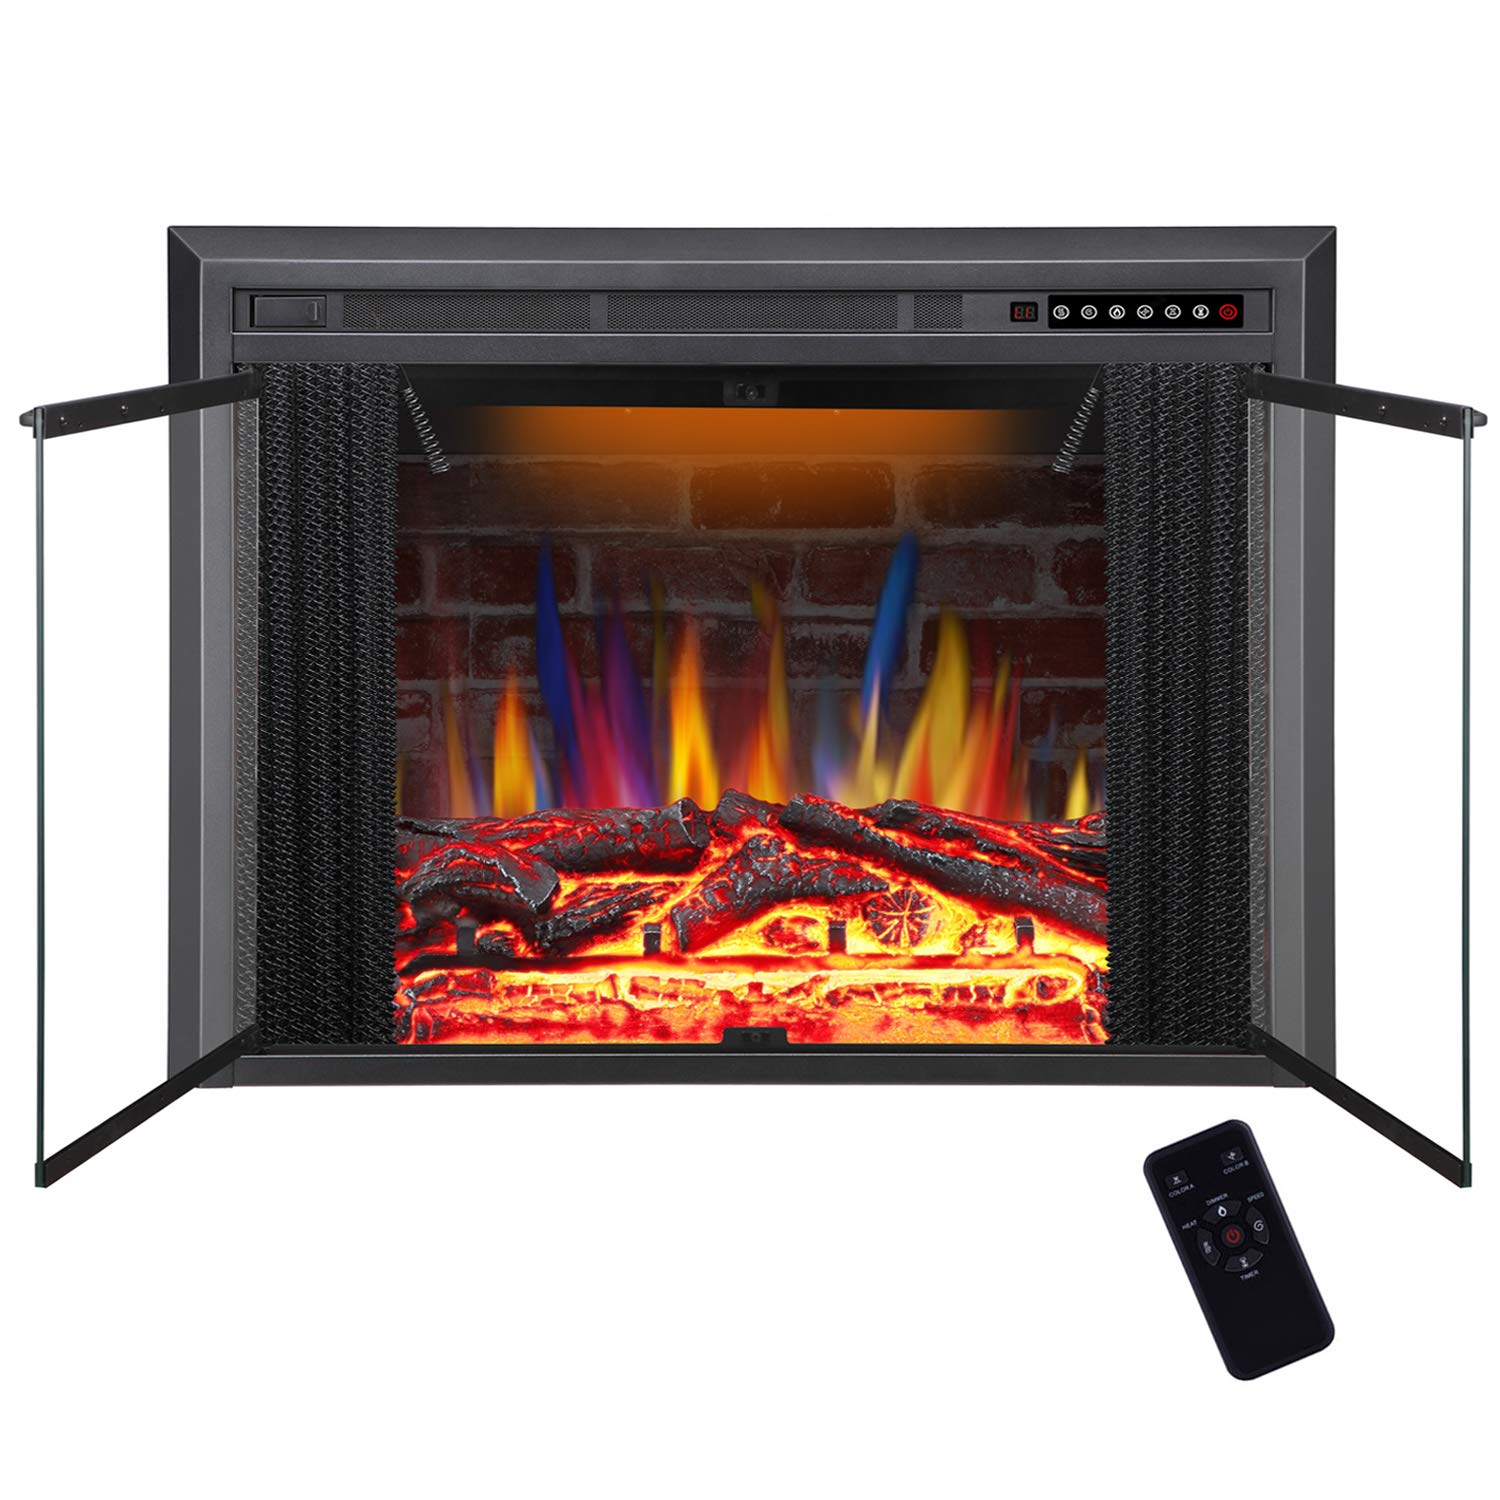 R.W.FLAME 39 Electric Fireplace Insert, Traditional Antiqued Build in Recessed Electric Stove Heater, Glass Door and Mesh Screen,Touch Screen,Remote Control with Timer, Colorful Flame Option